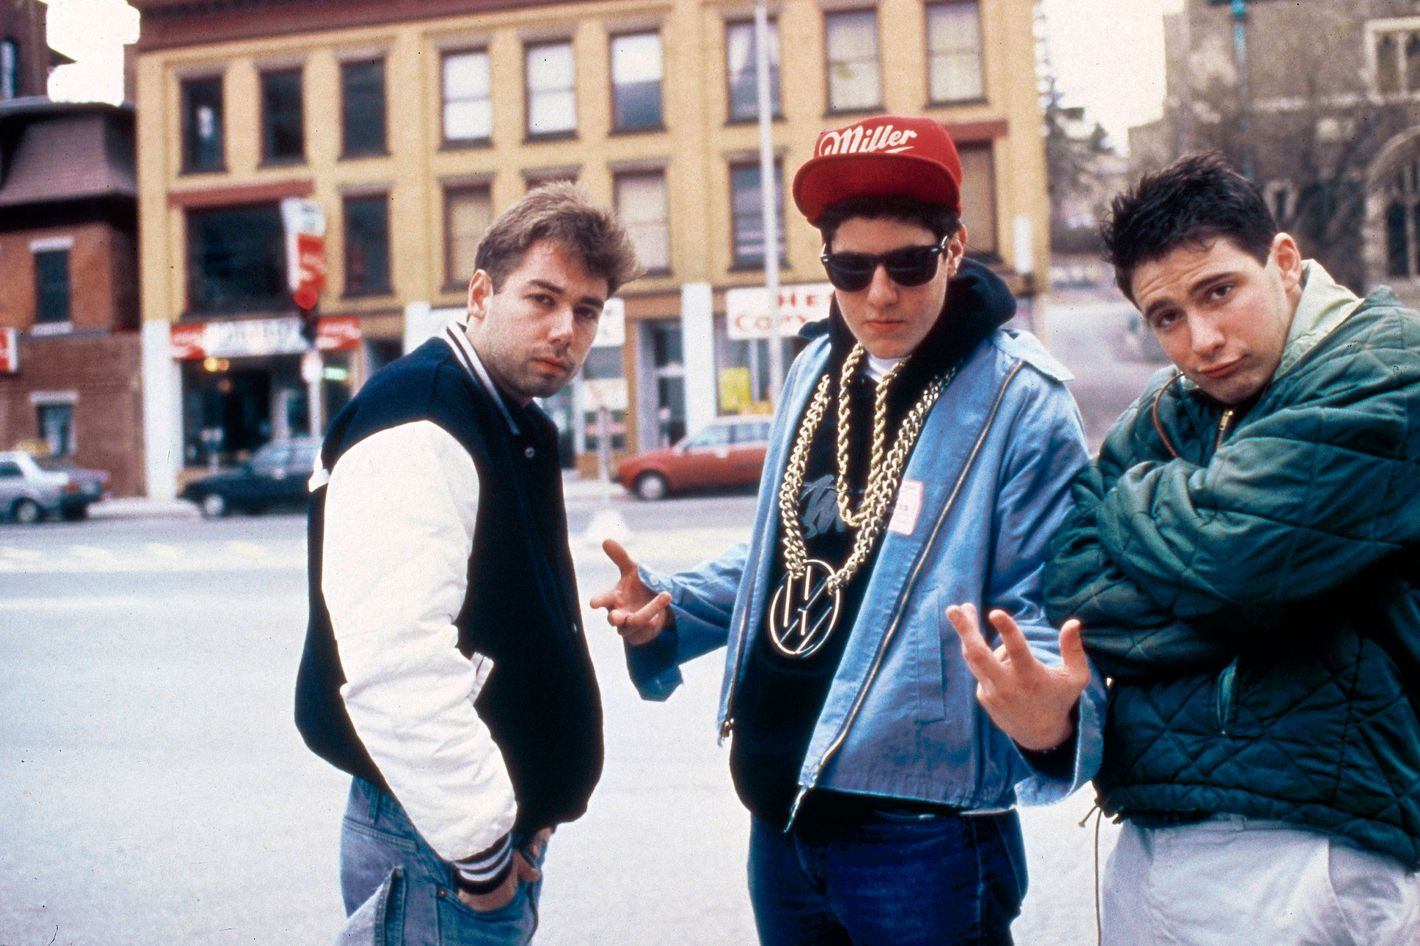 Cover art for the 1989 album was shot at the corner of Ludlow and Rivington.